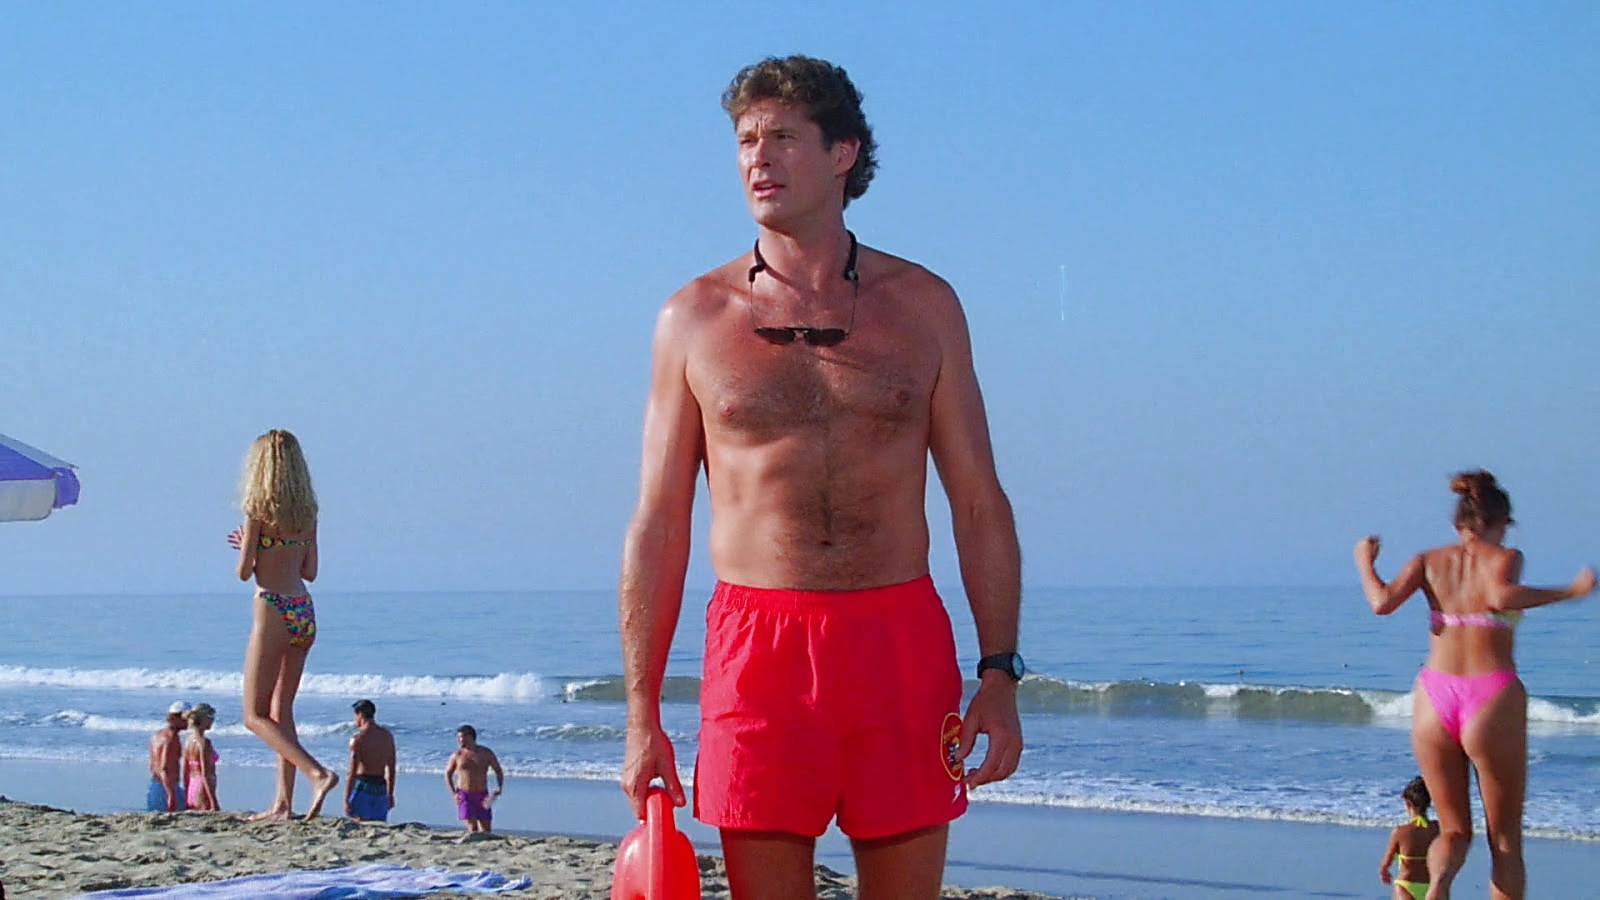 David Hasselhoff sexy shirtless scene June 1, 2019, 2pm